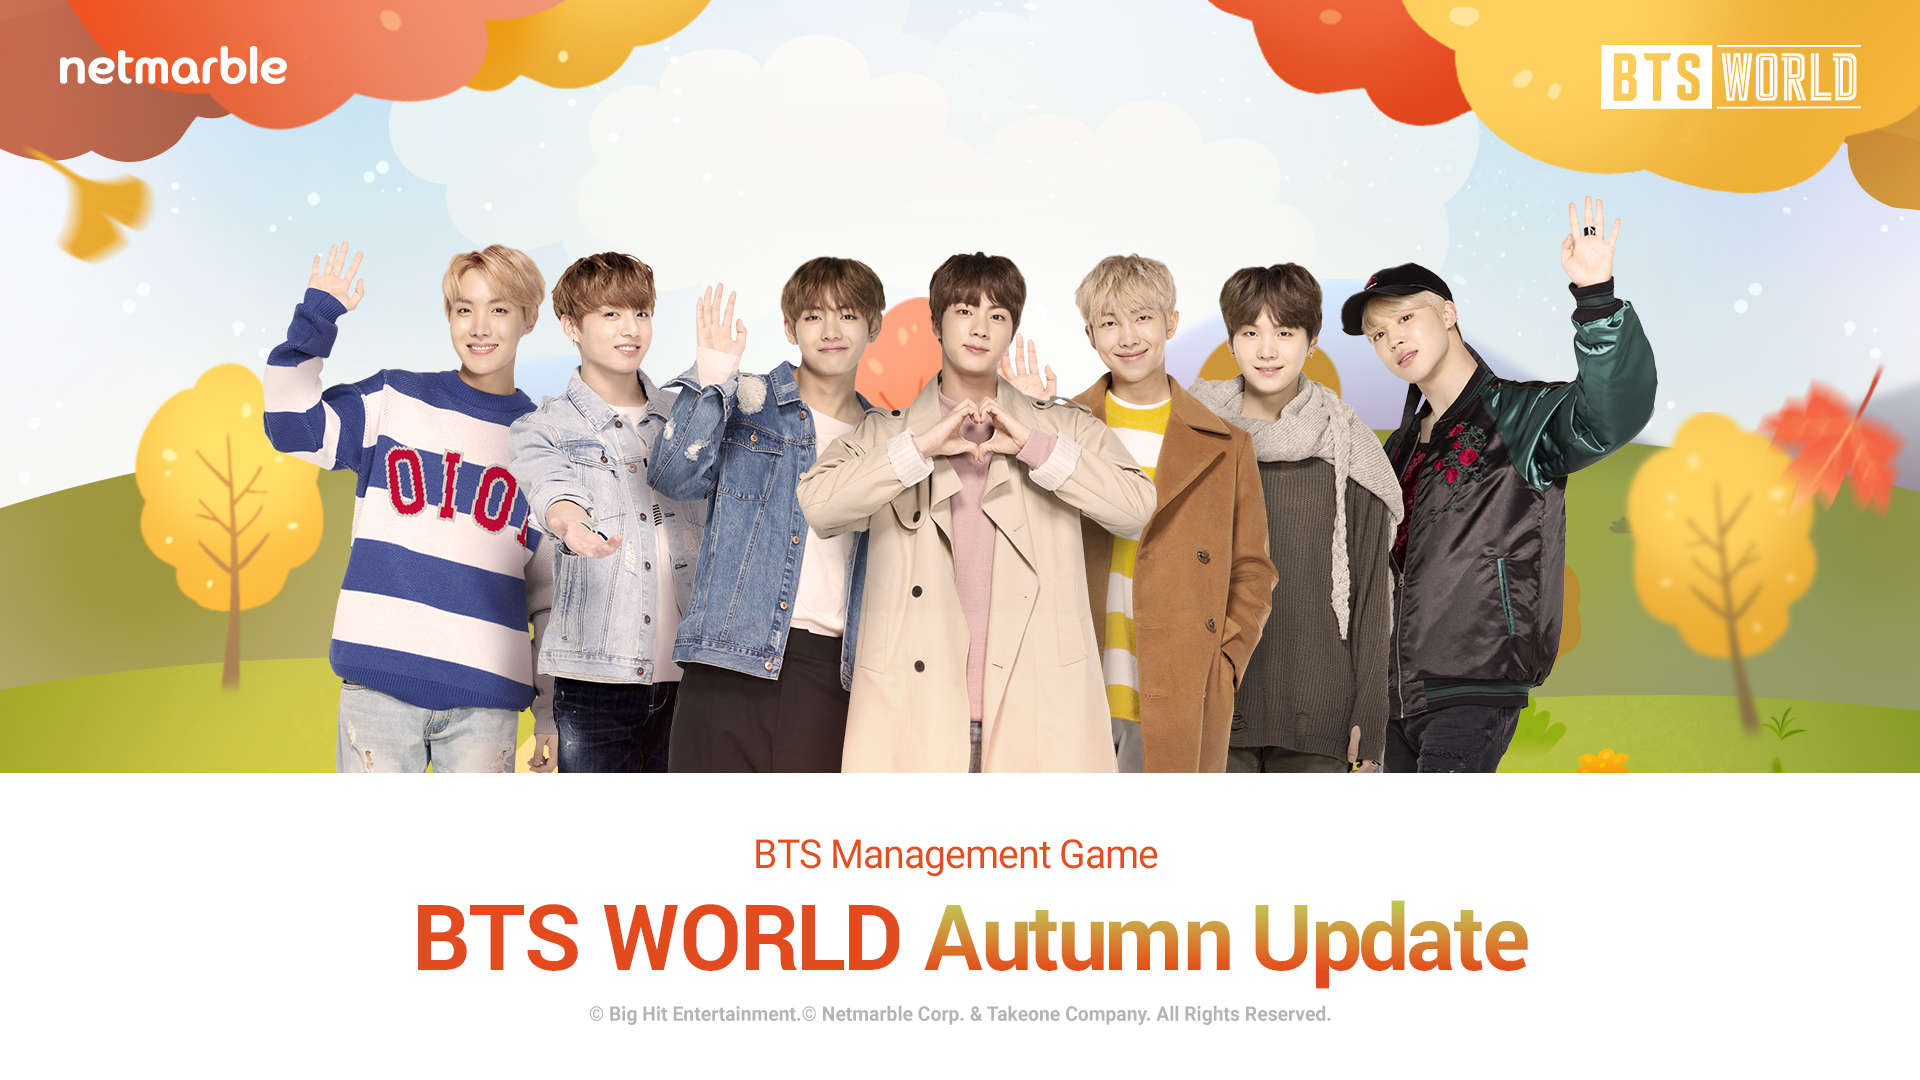 simulasi mobile BTS WORLD